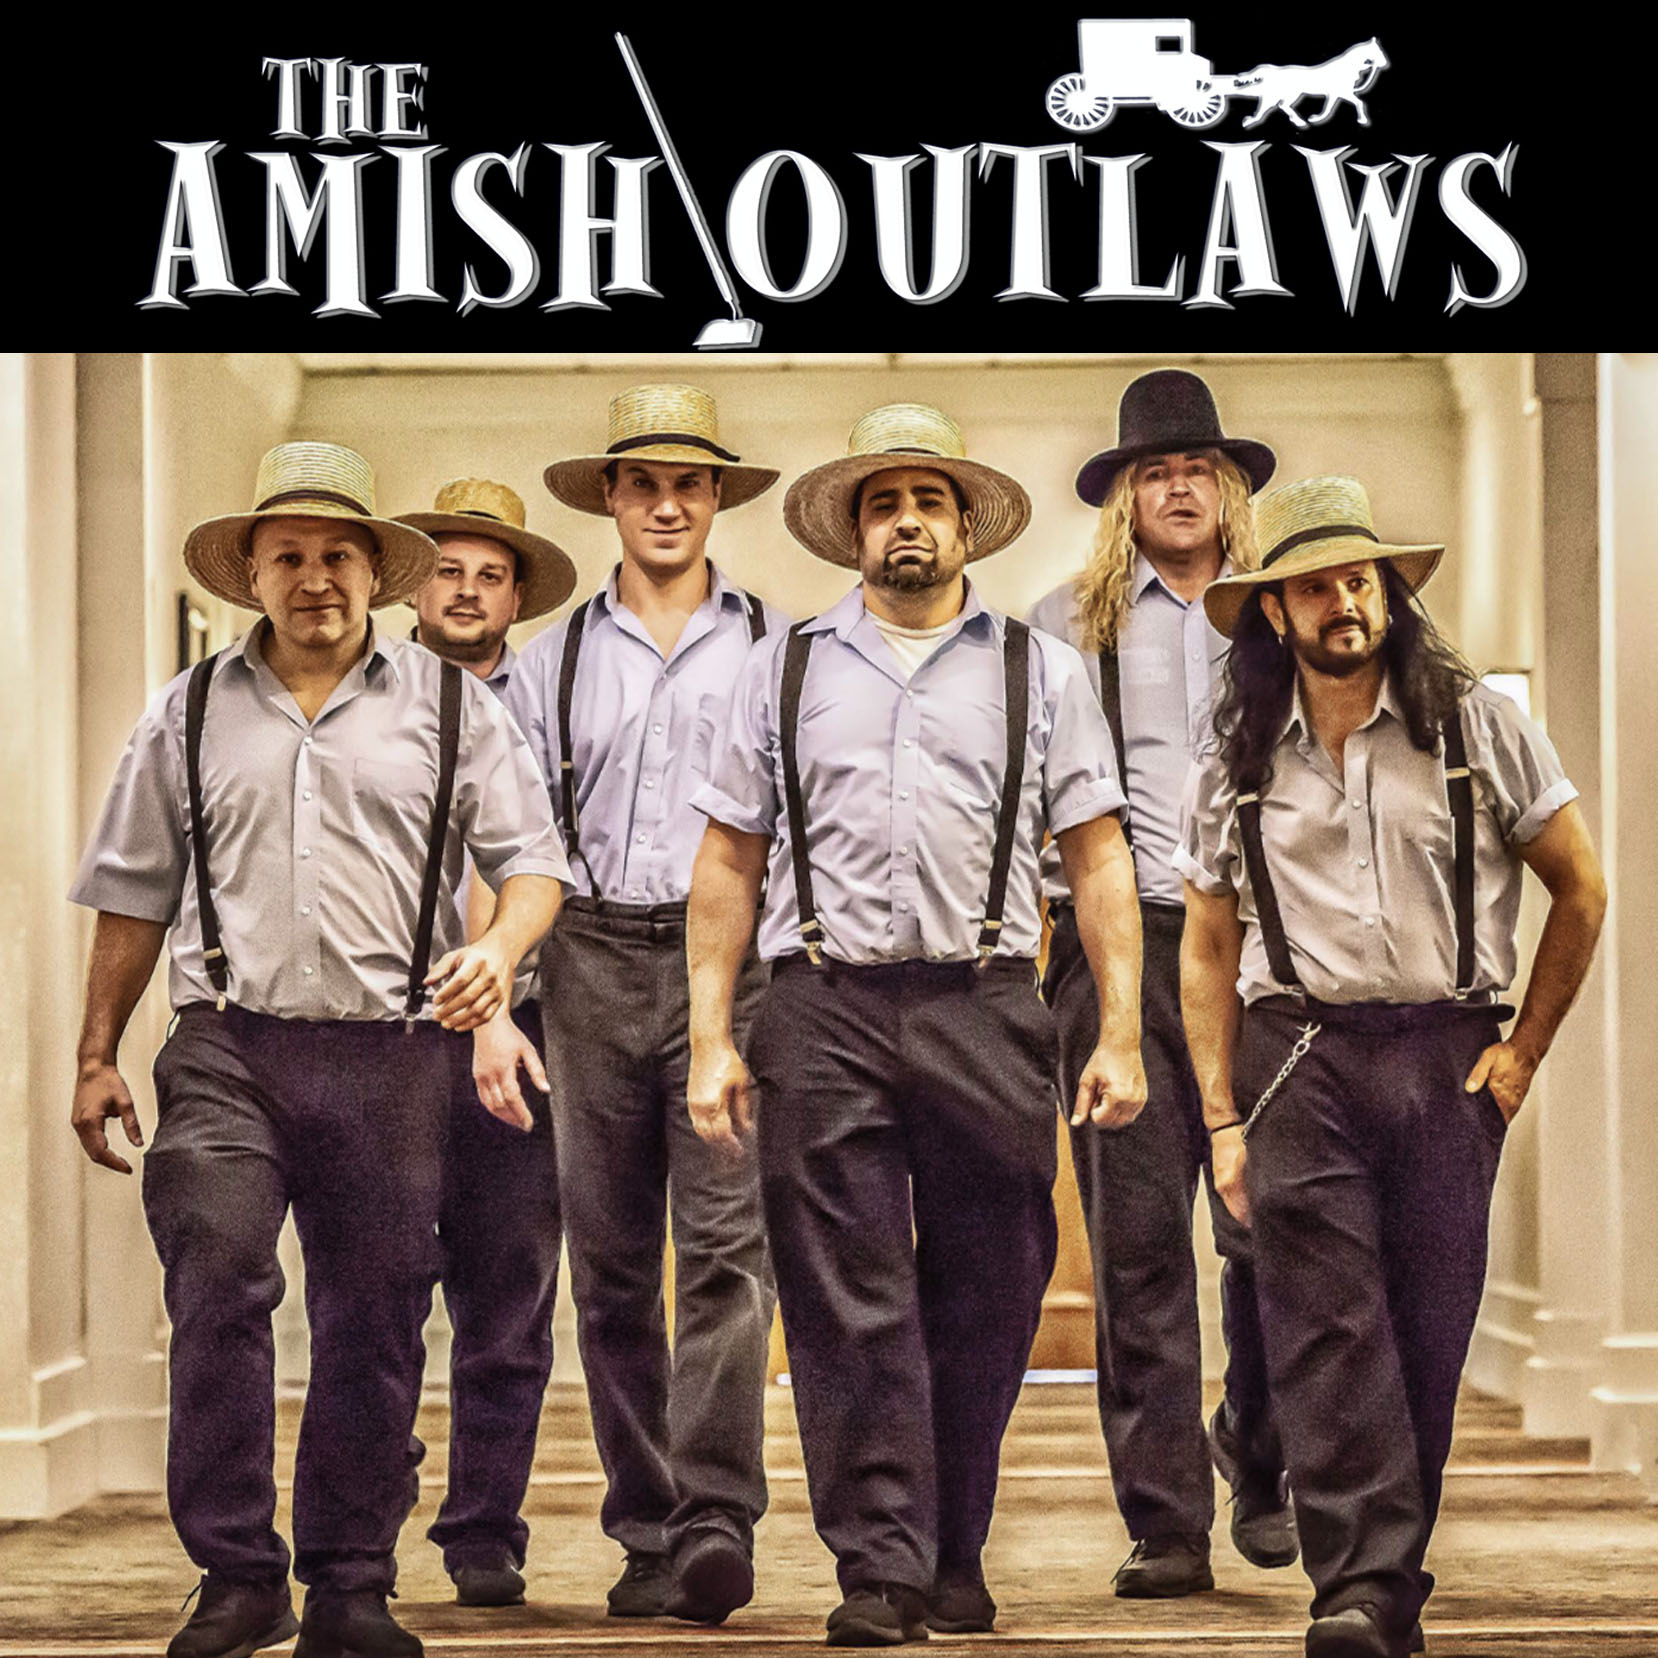 Live at the Riverfront! Drive-in concert featuring The Amish Outlaws and Best Kept Soul!